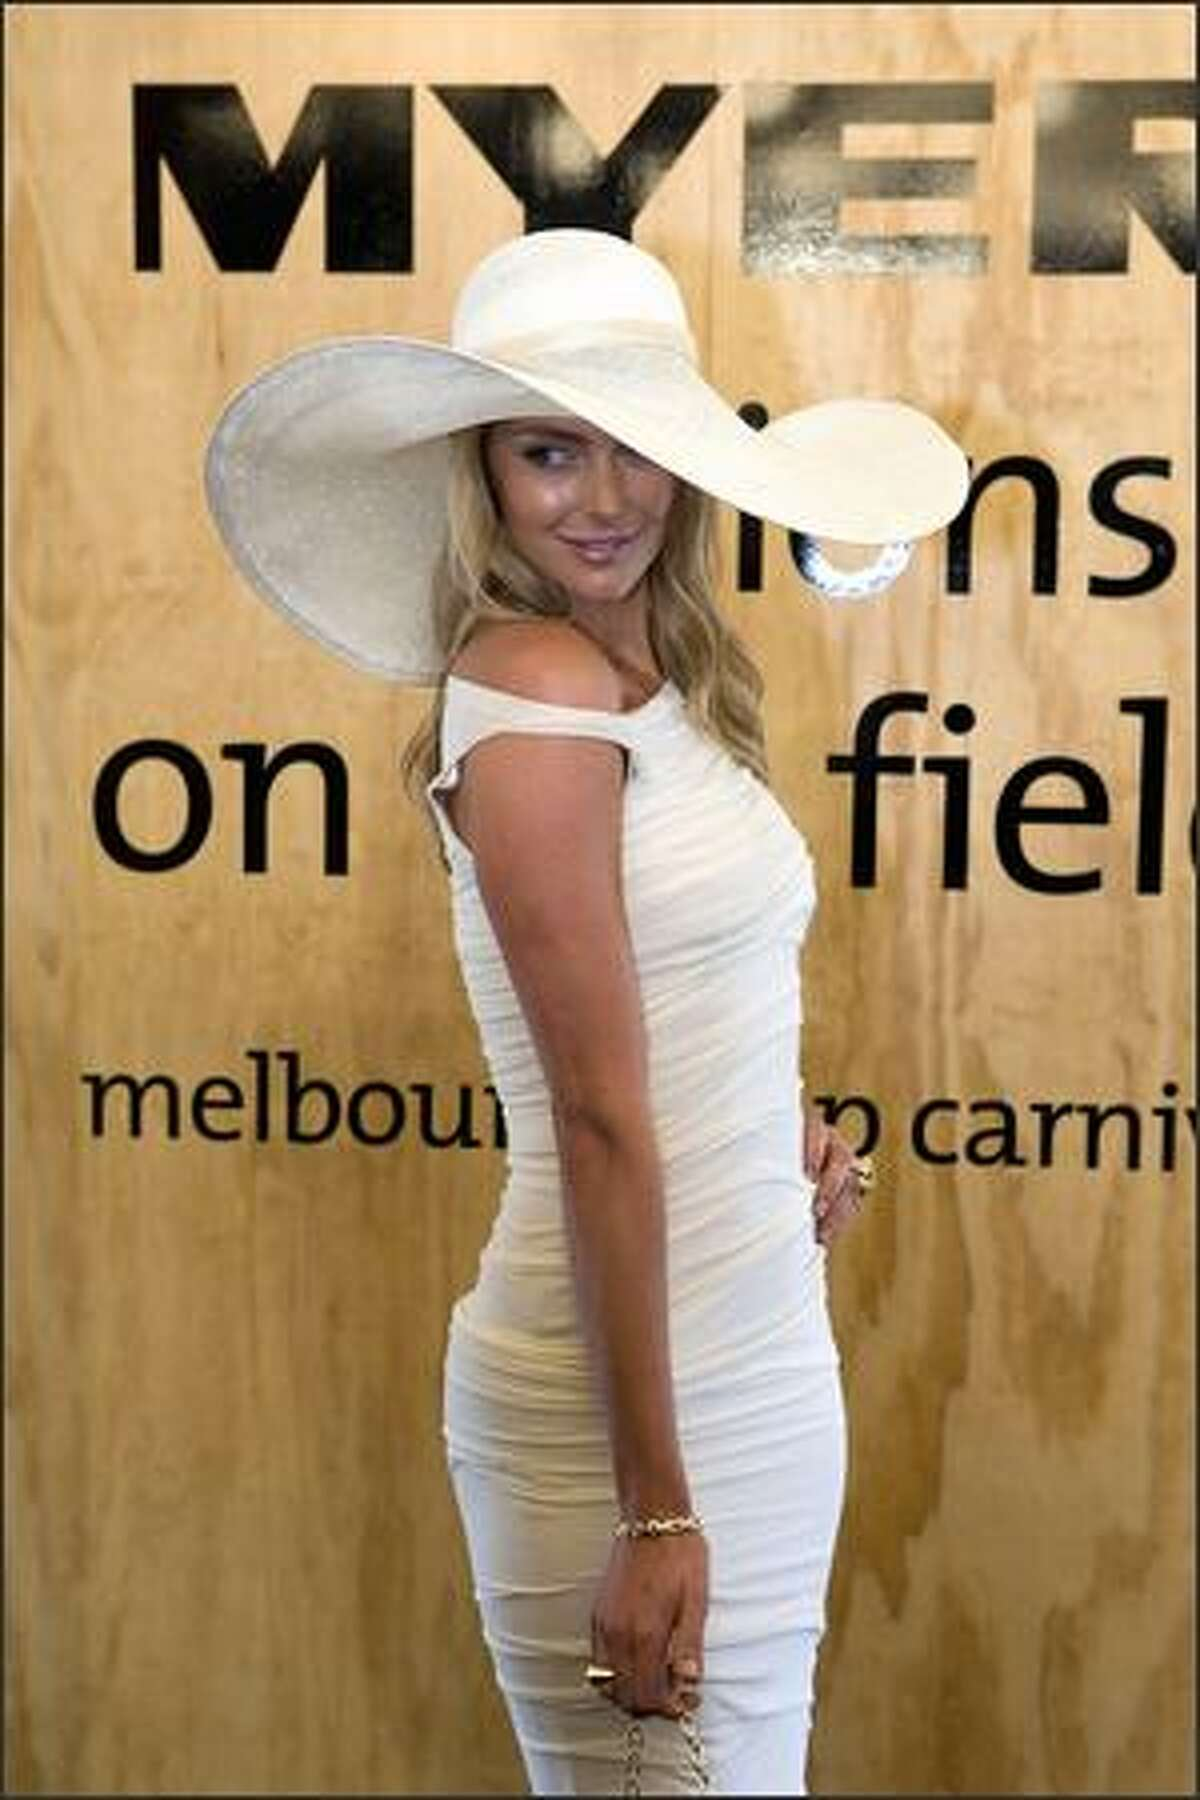 Model/TV personality Jennifer Hawkins attends the AAMI Victoria Derby Day at Flemington Race Course in Melbourne, Australia, on Saturday. Derby Day, like its counterpart at Ascot Race Course in England, is the social event of the thoroughbred horse racing season.